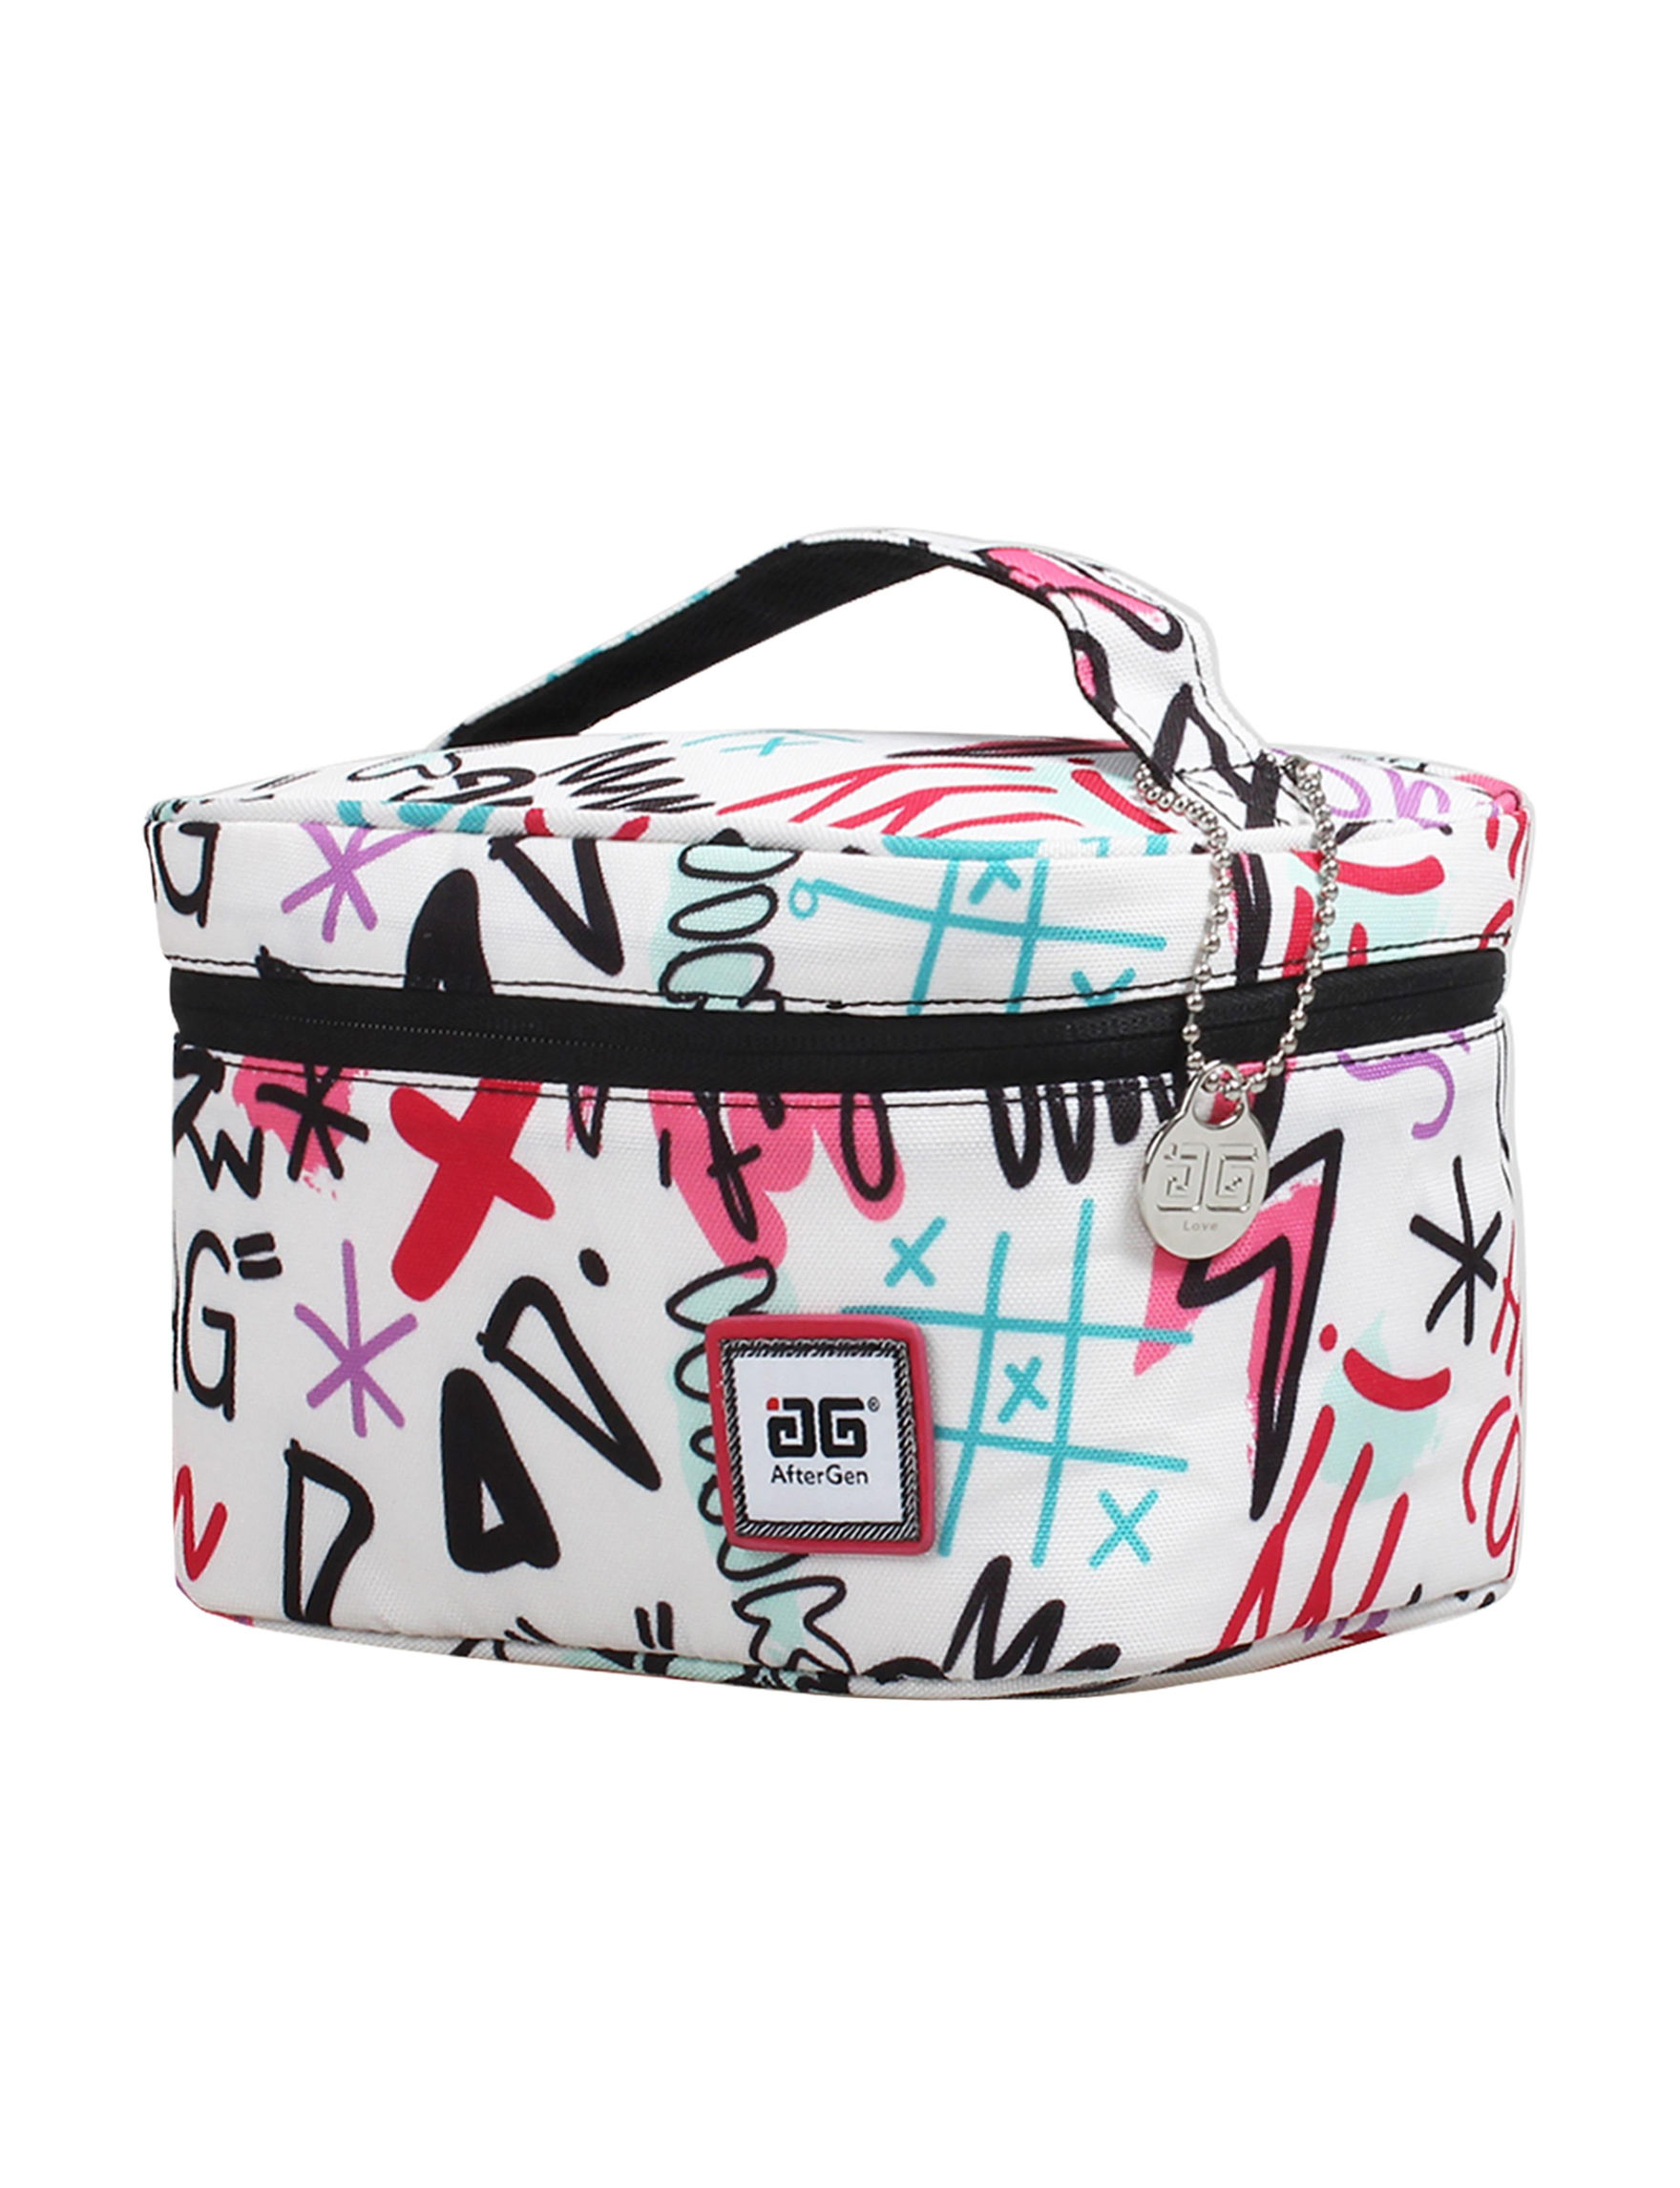 Aftergen White / Multi Lunch Boxes & Bags Travel Accessories